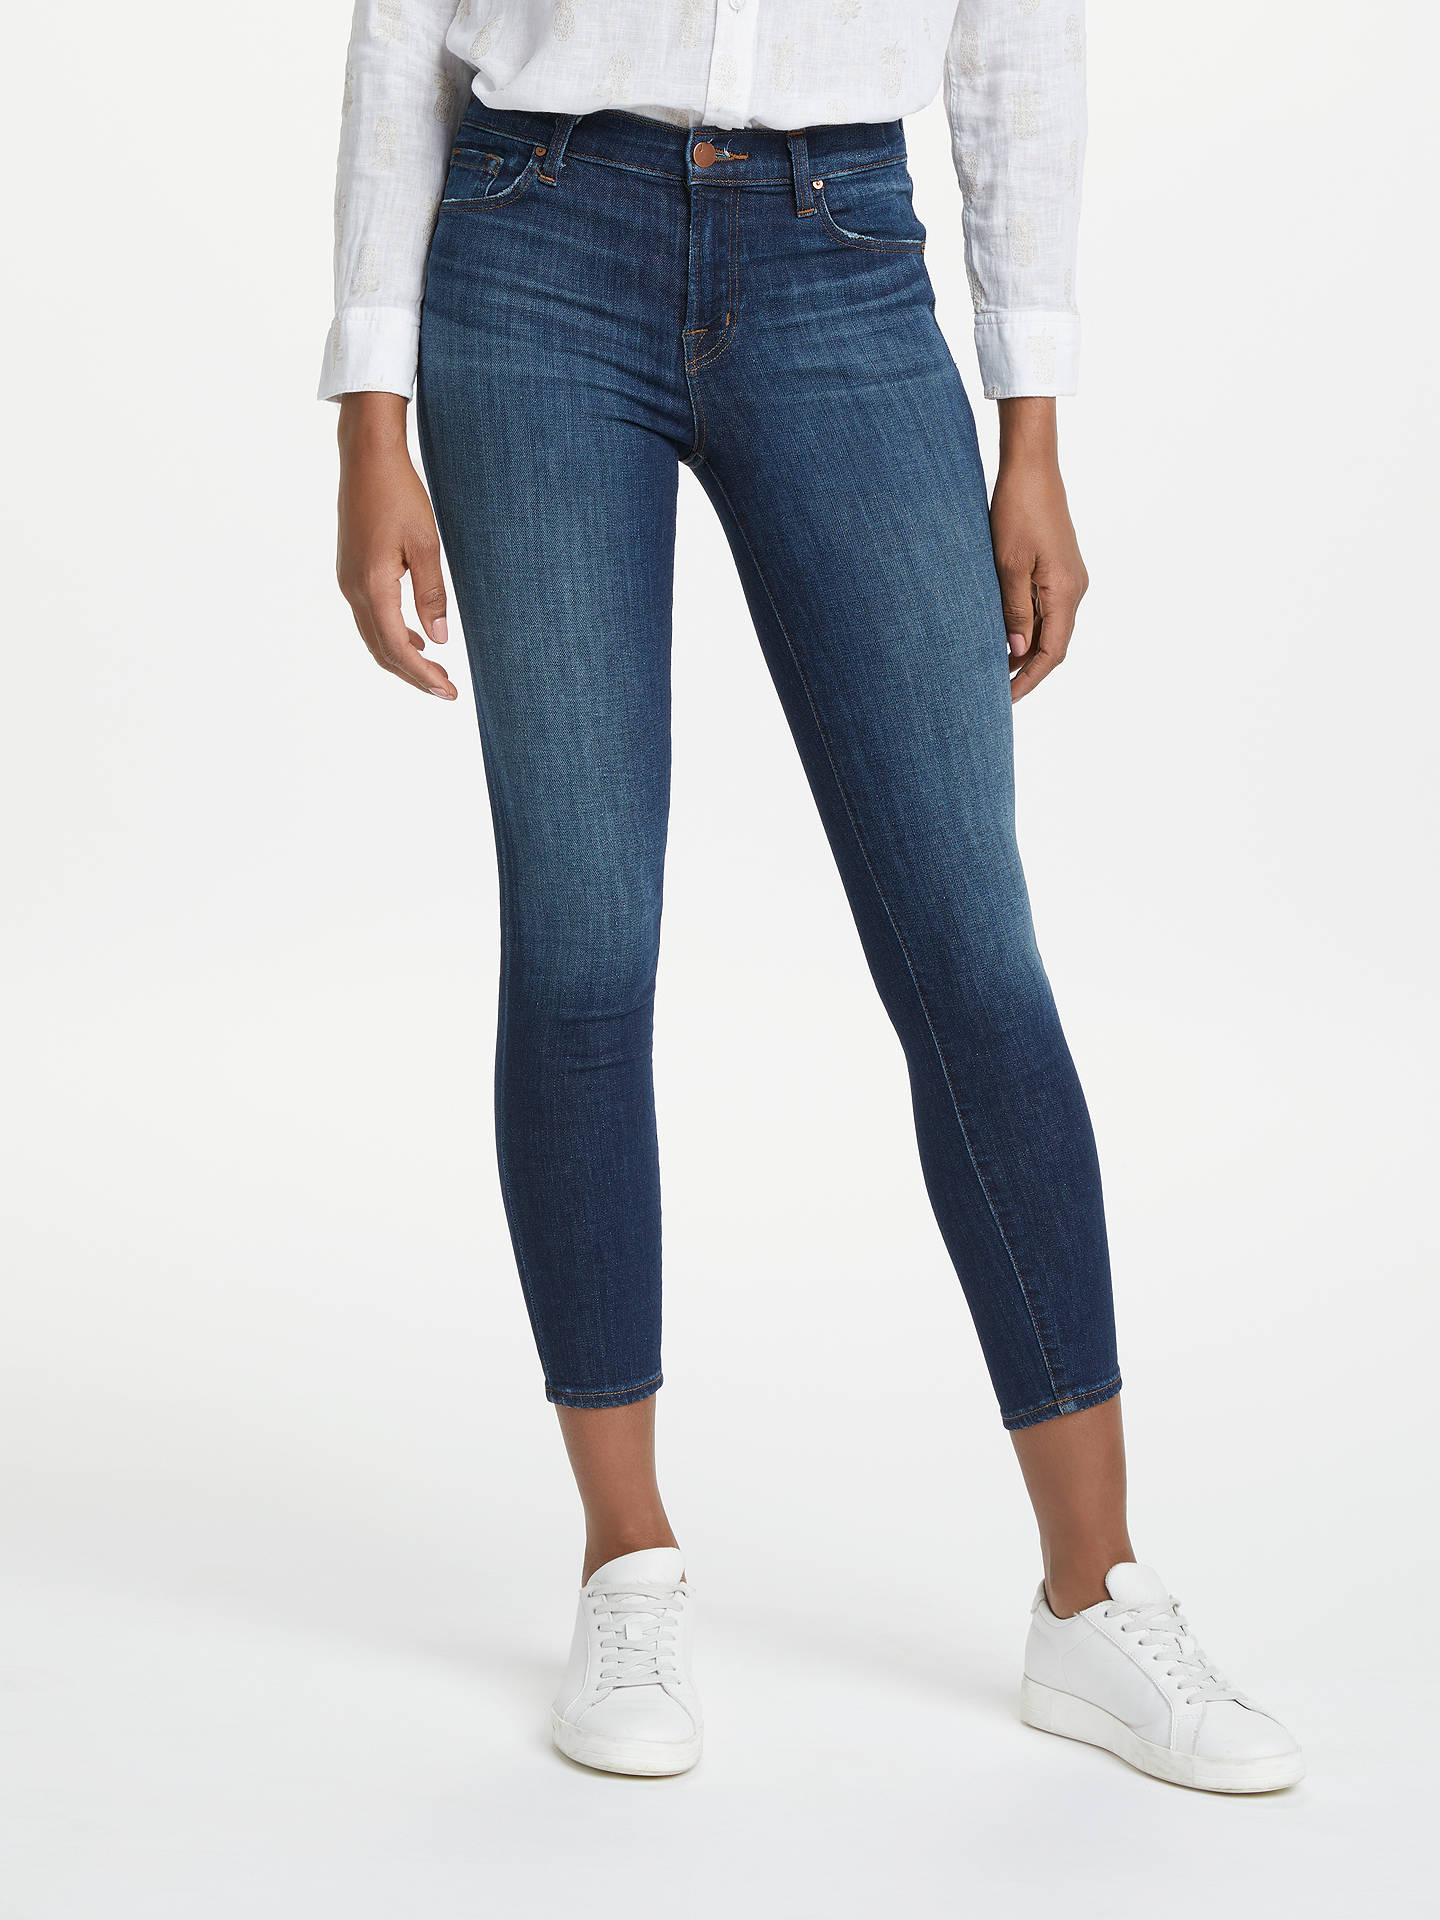 93e16f195fe03 Buy J Brand 835 Mid Rise Cropped Skinny Jeans, Sublime, 24 Online at  johnlewis ...